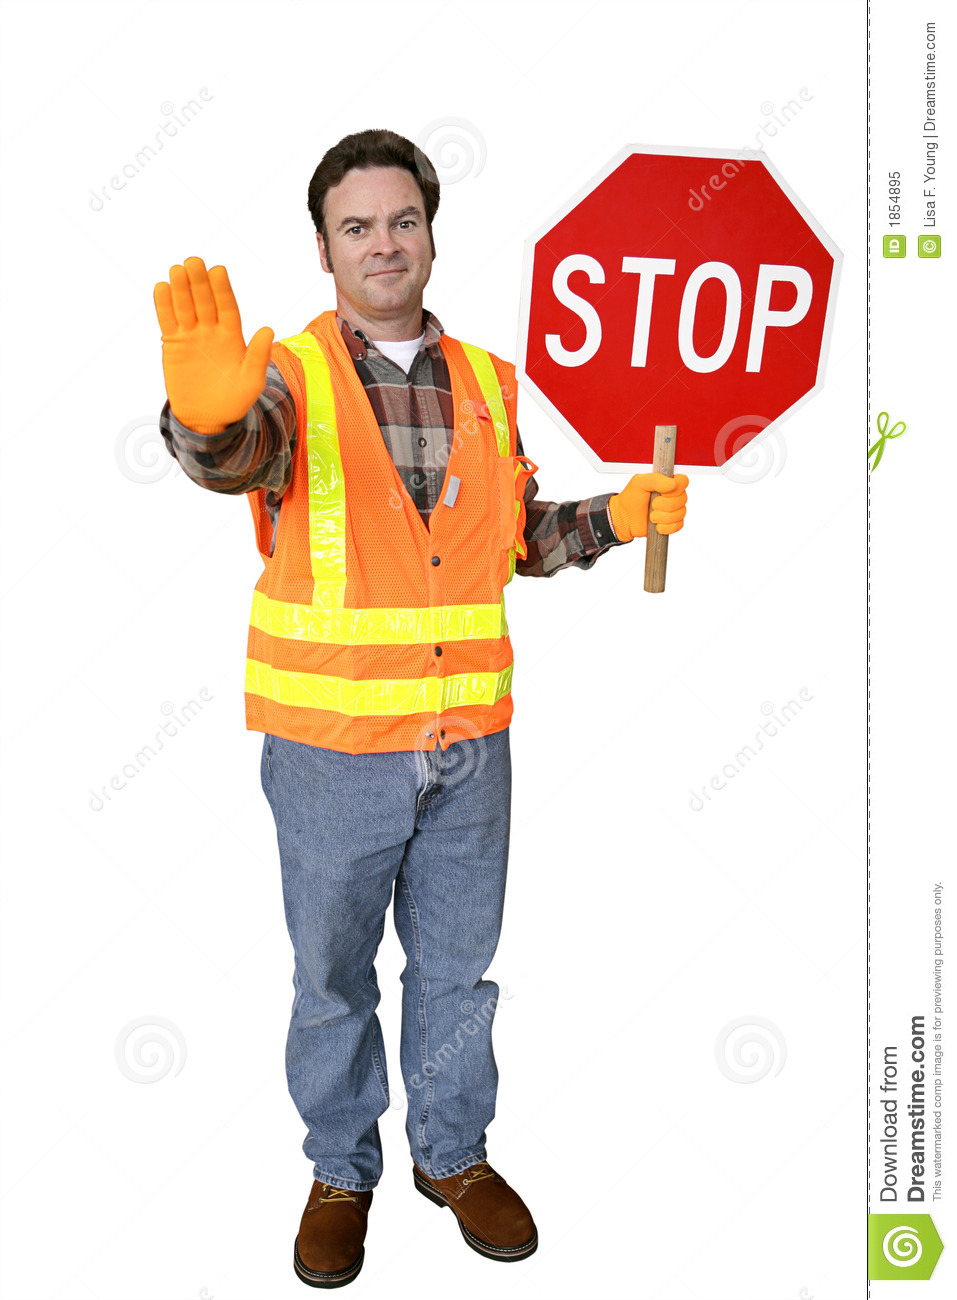 Crossing Guard Full Body Isolated Royalty Free Stock Photo  Image 1854895